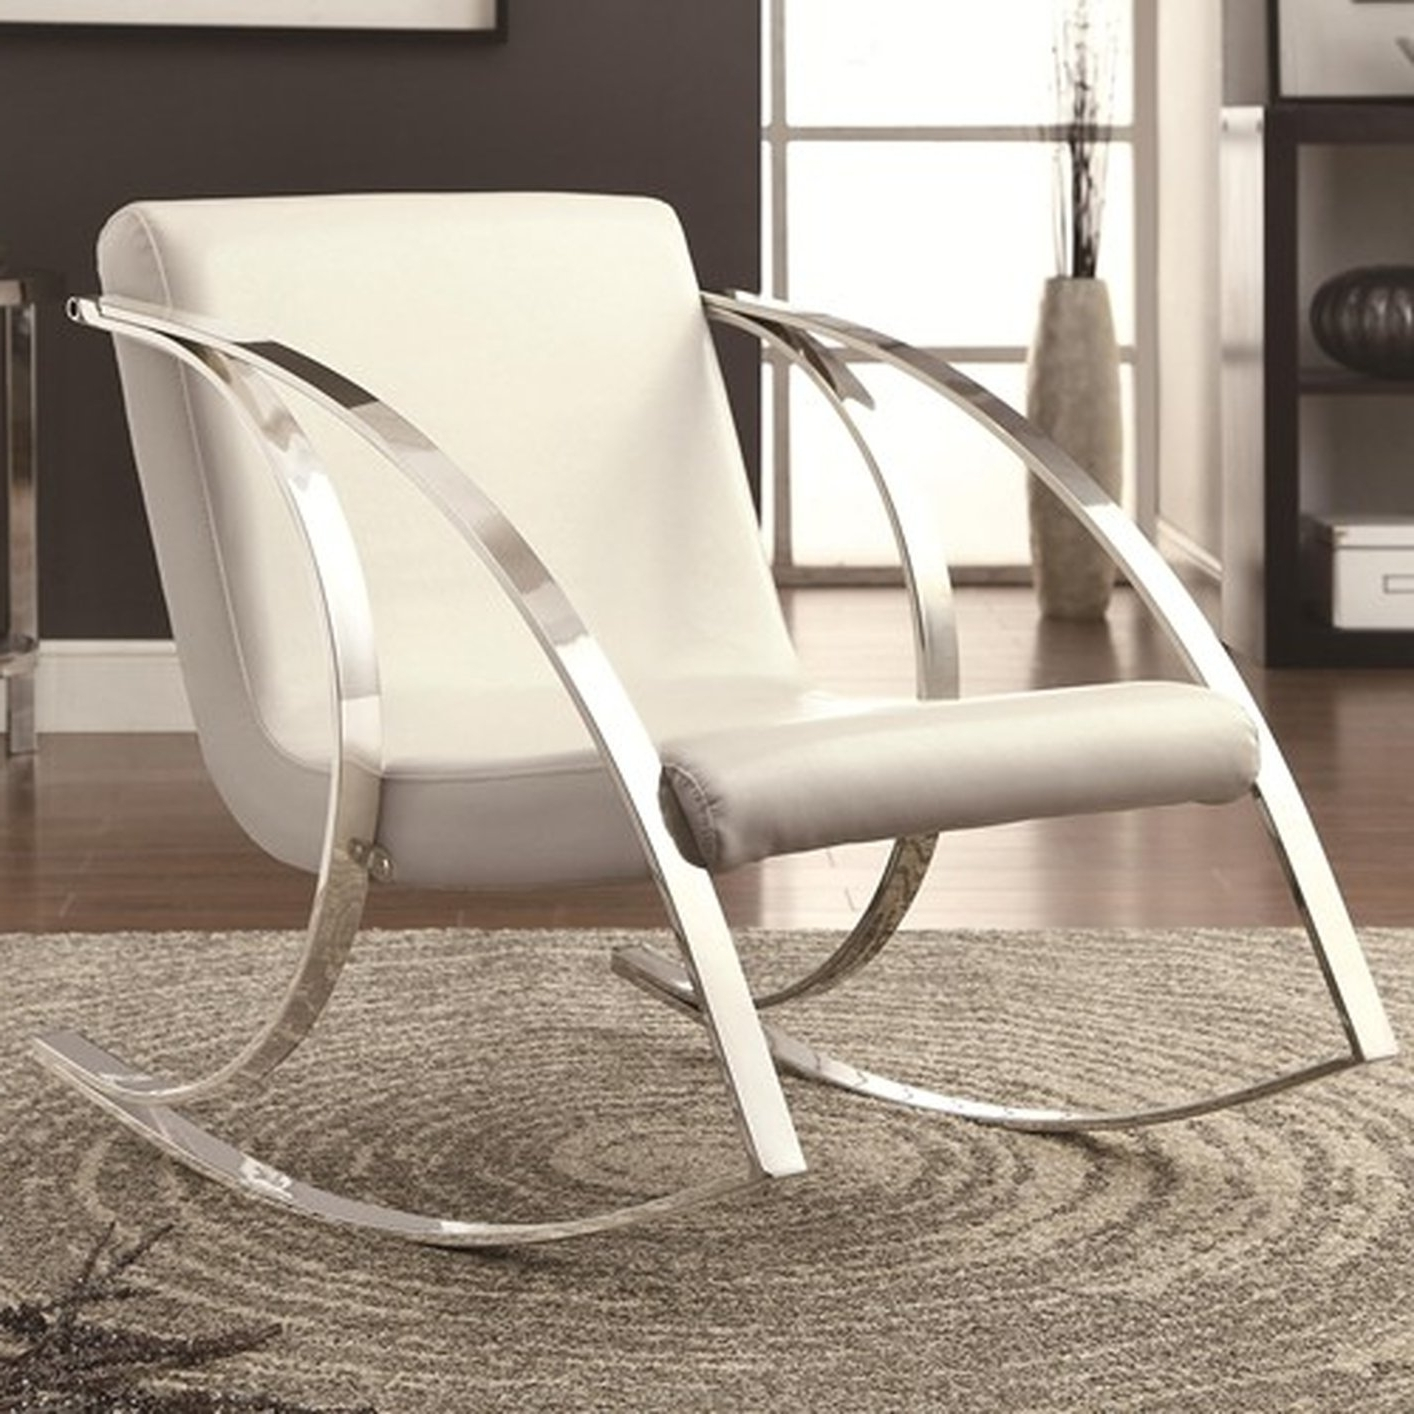 Most Recently Released White Leather Rocking Chair – Steal A Sofa Furniture Outlet Los With Regard To Rocking Sofa Chairs (View 10 of 20)